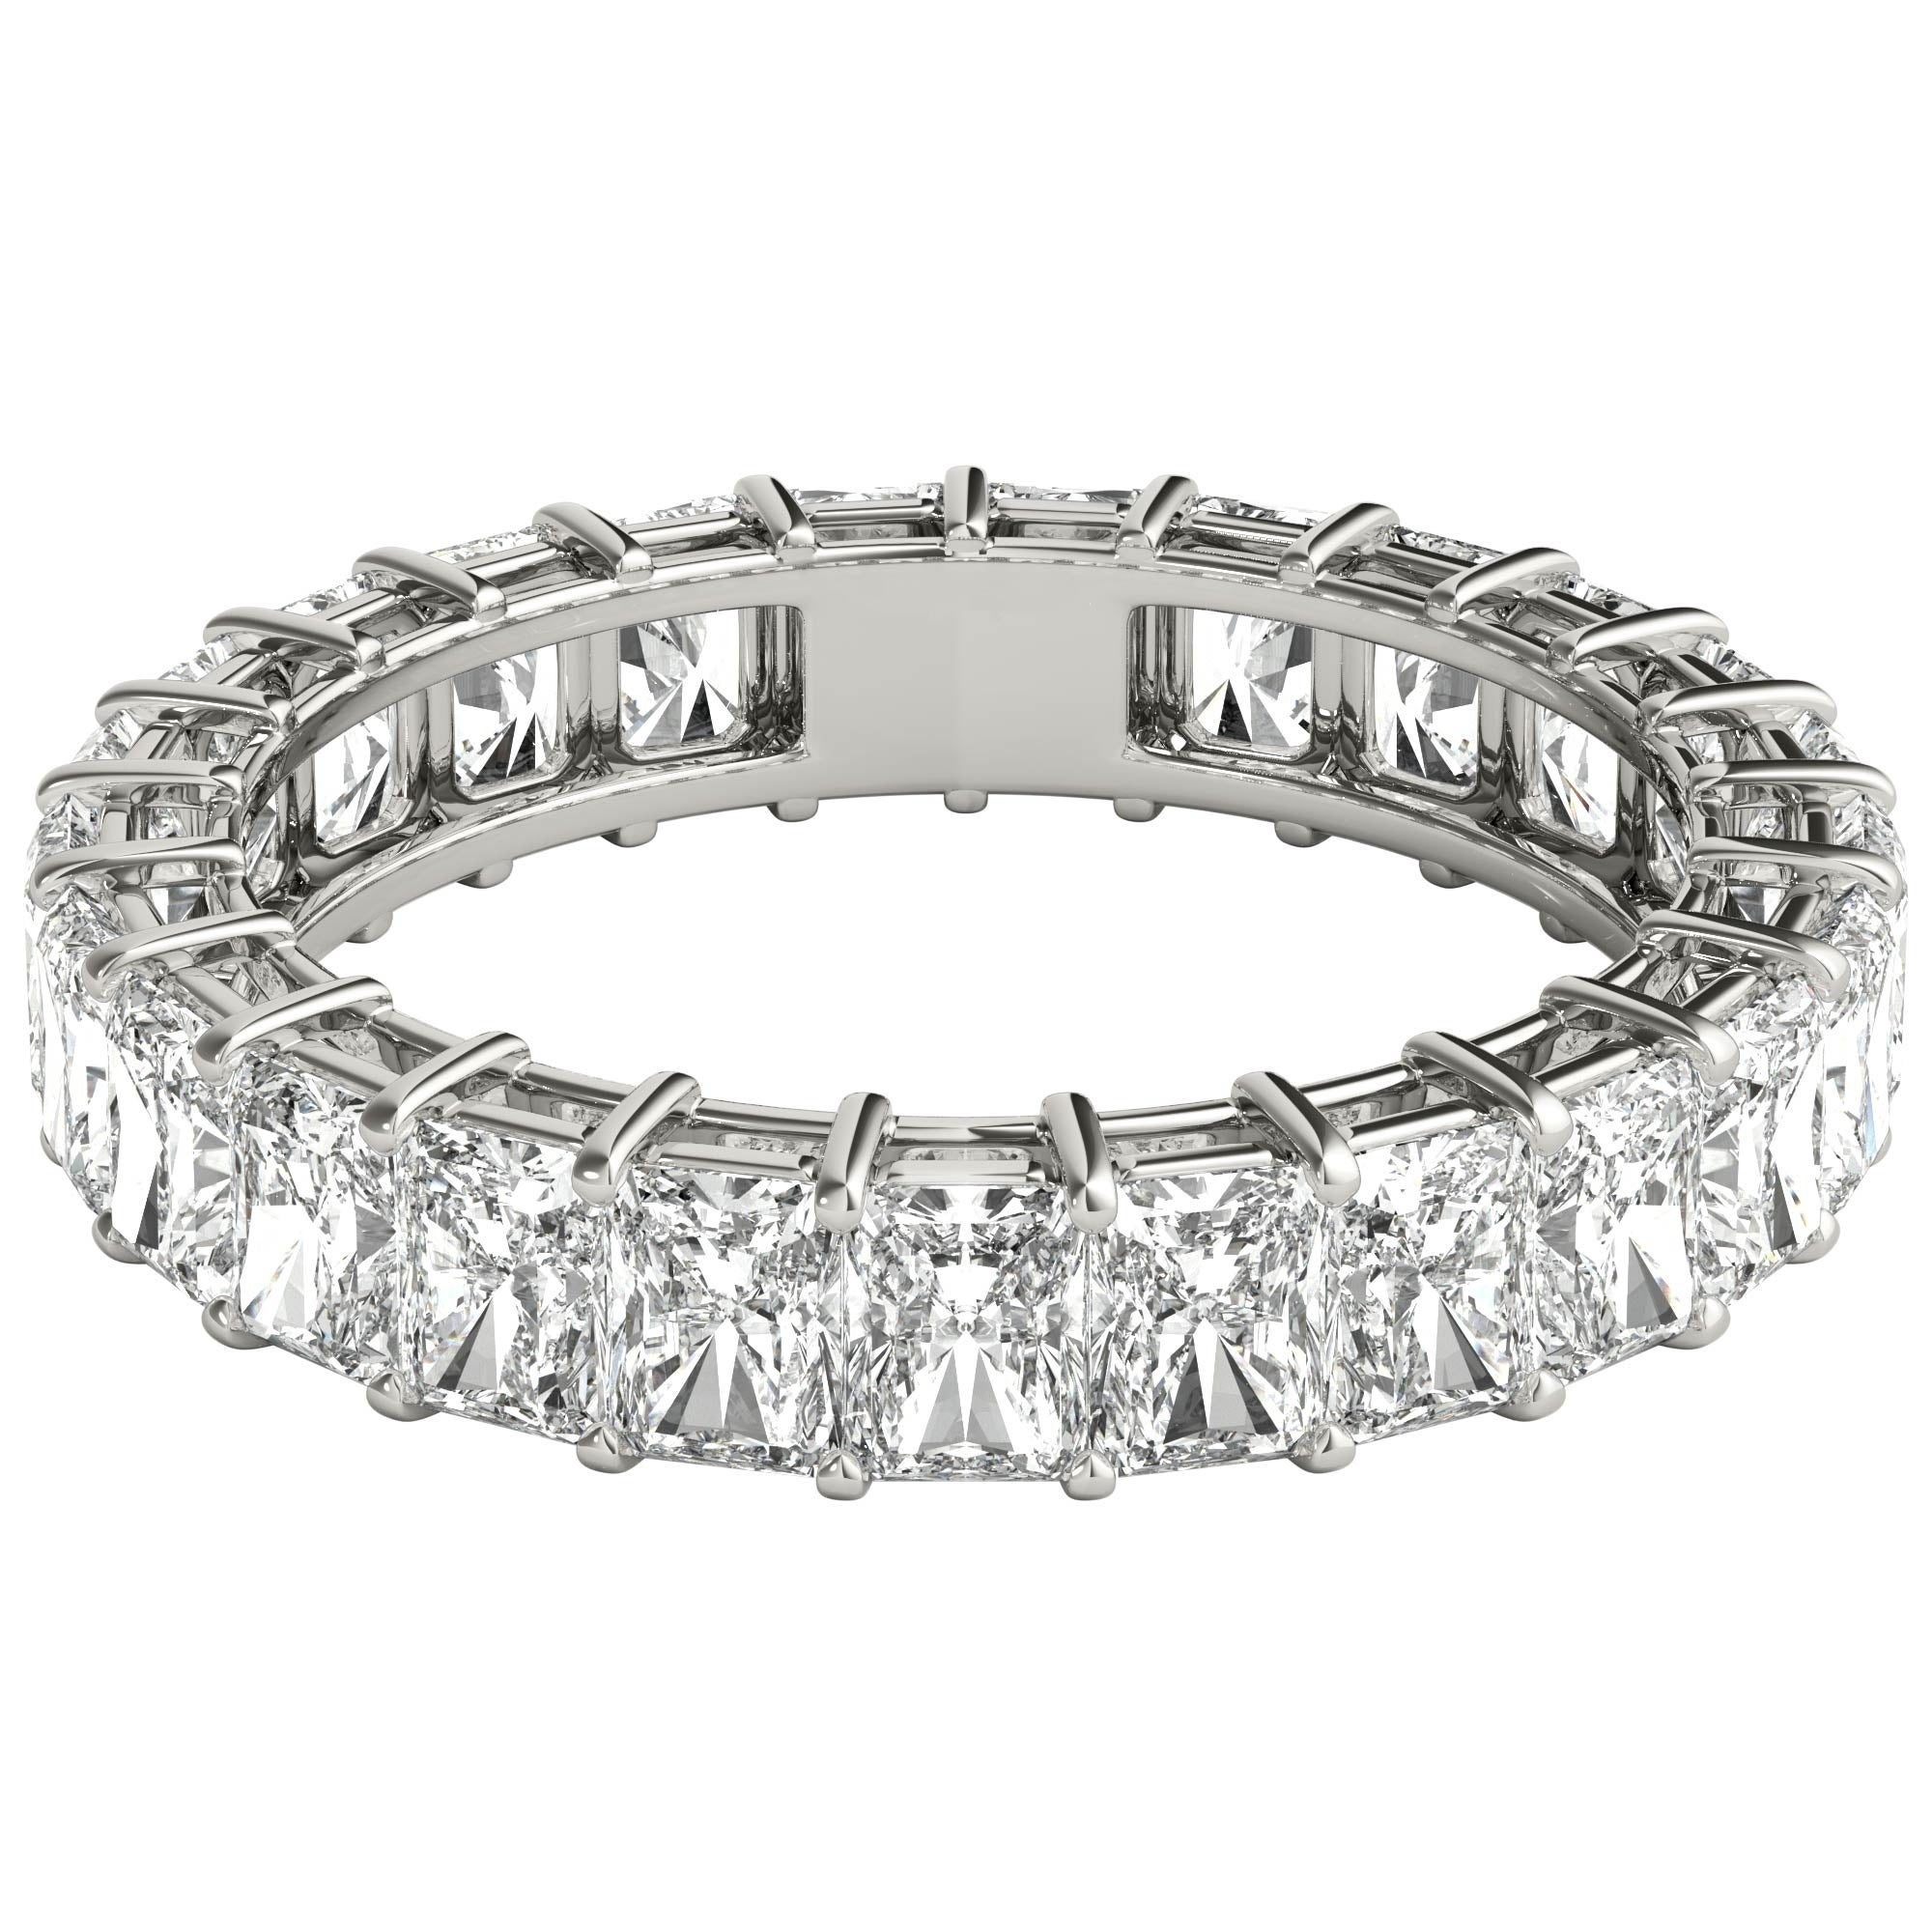 Seraphina 18K White Gold 4Ct Tdw Radiant Cut Diamond Eternity Ring In Most Up To Date Celebration Ideal 1Diamond Five Stone Anniversary Bands In White Gold (Gallery 19 of 25)